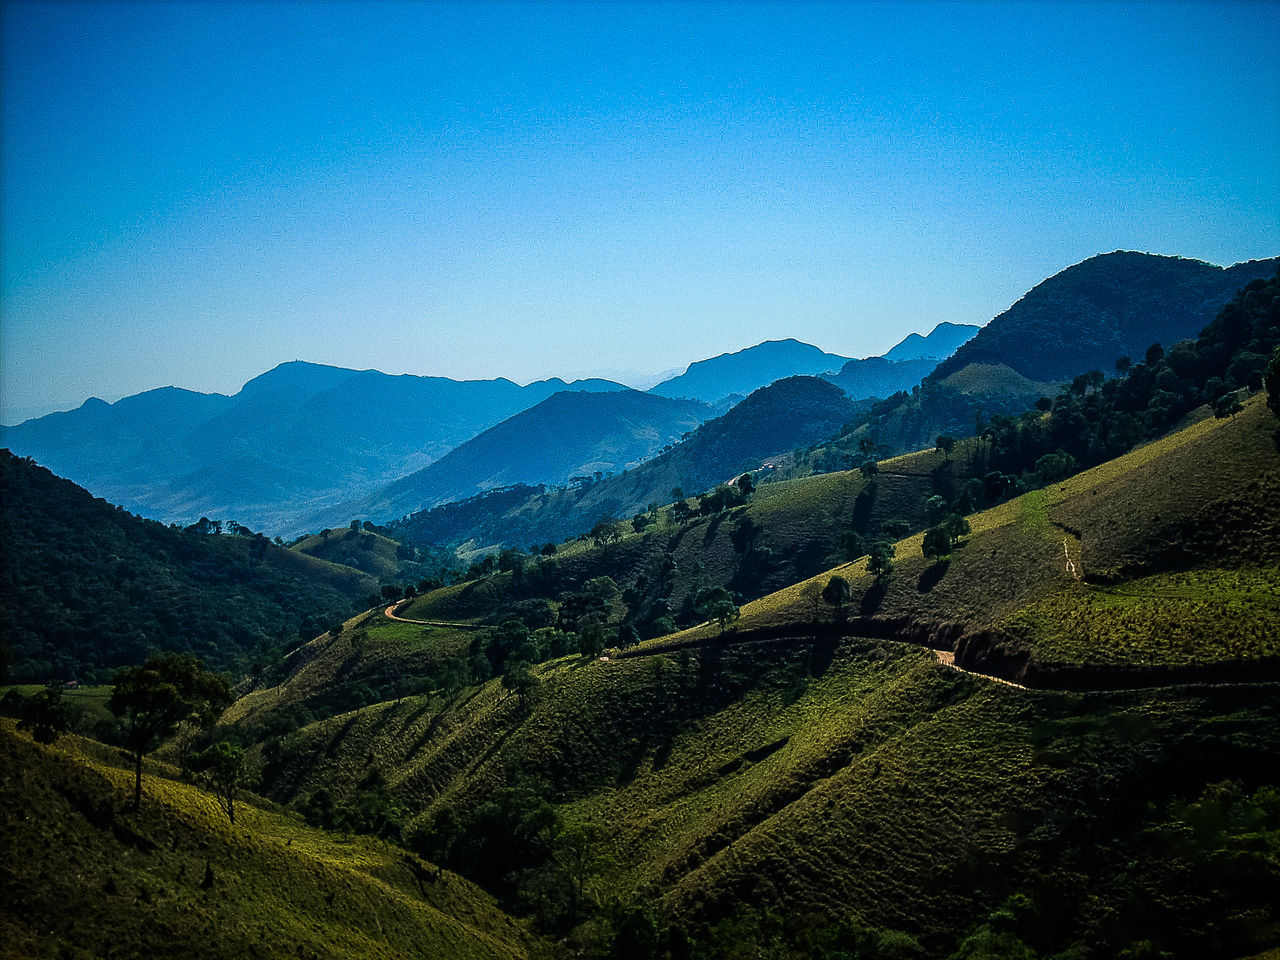 mountain, landscape, agriculture, nature, mountain range, beauty in nature, no people, outdoors, clear sky, tea crop, day, sky